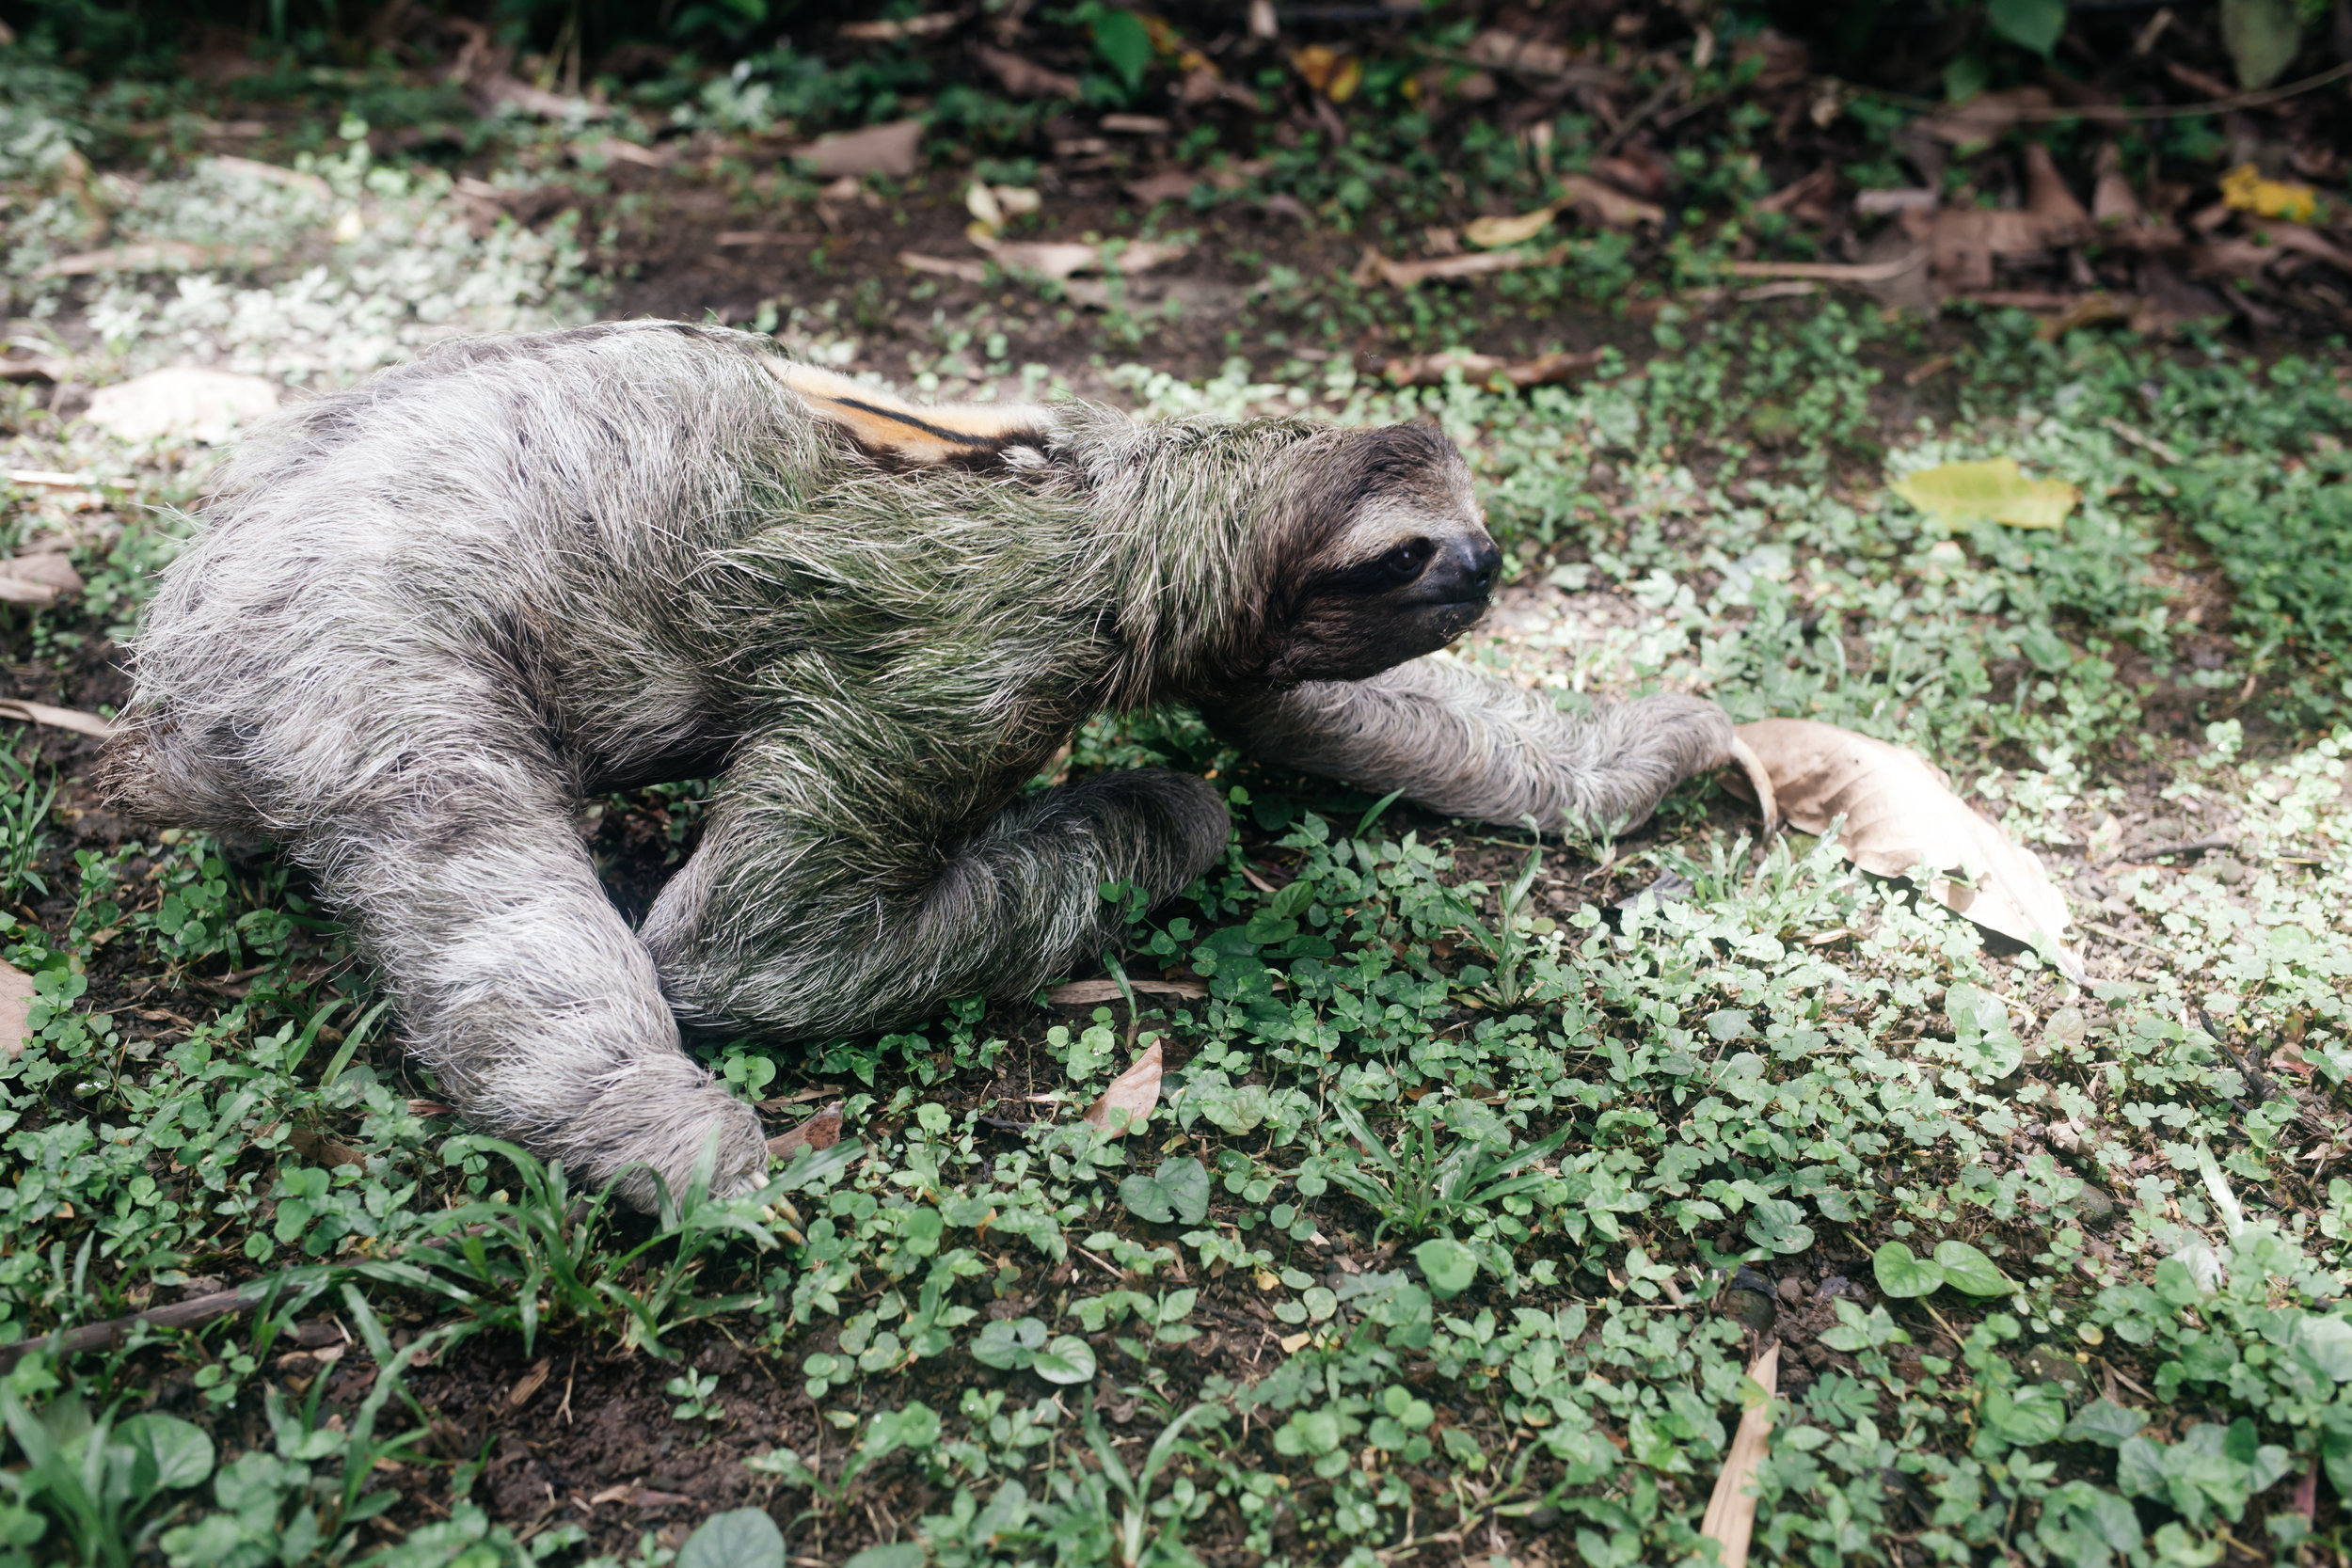 costarica_airbnb_sloth (41 of 49).jpg